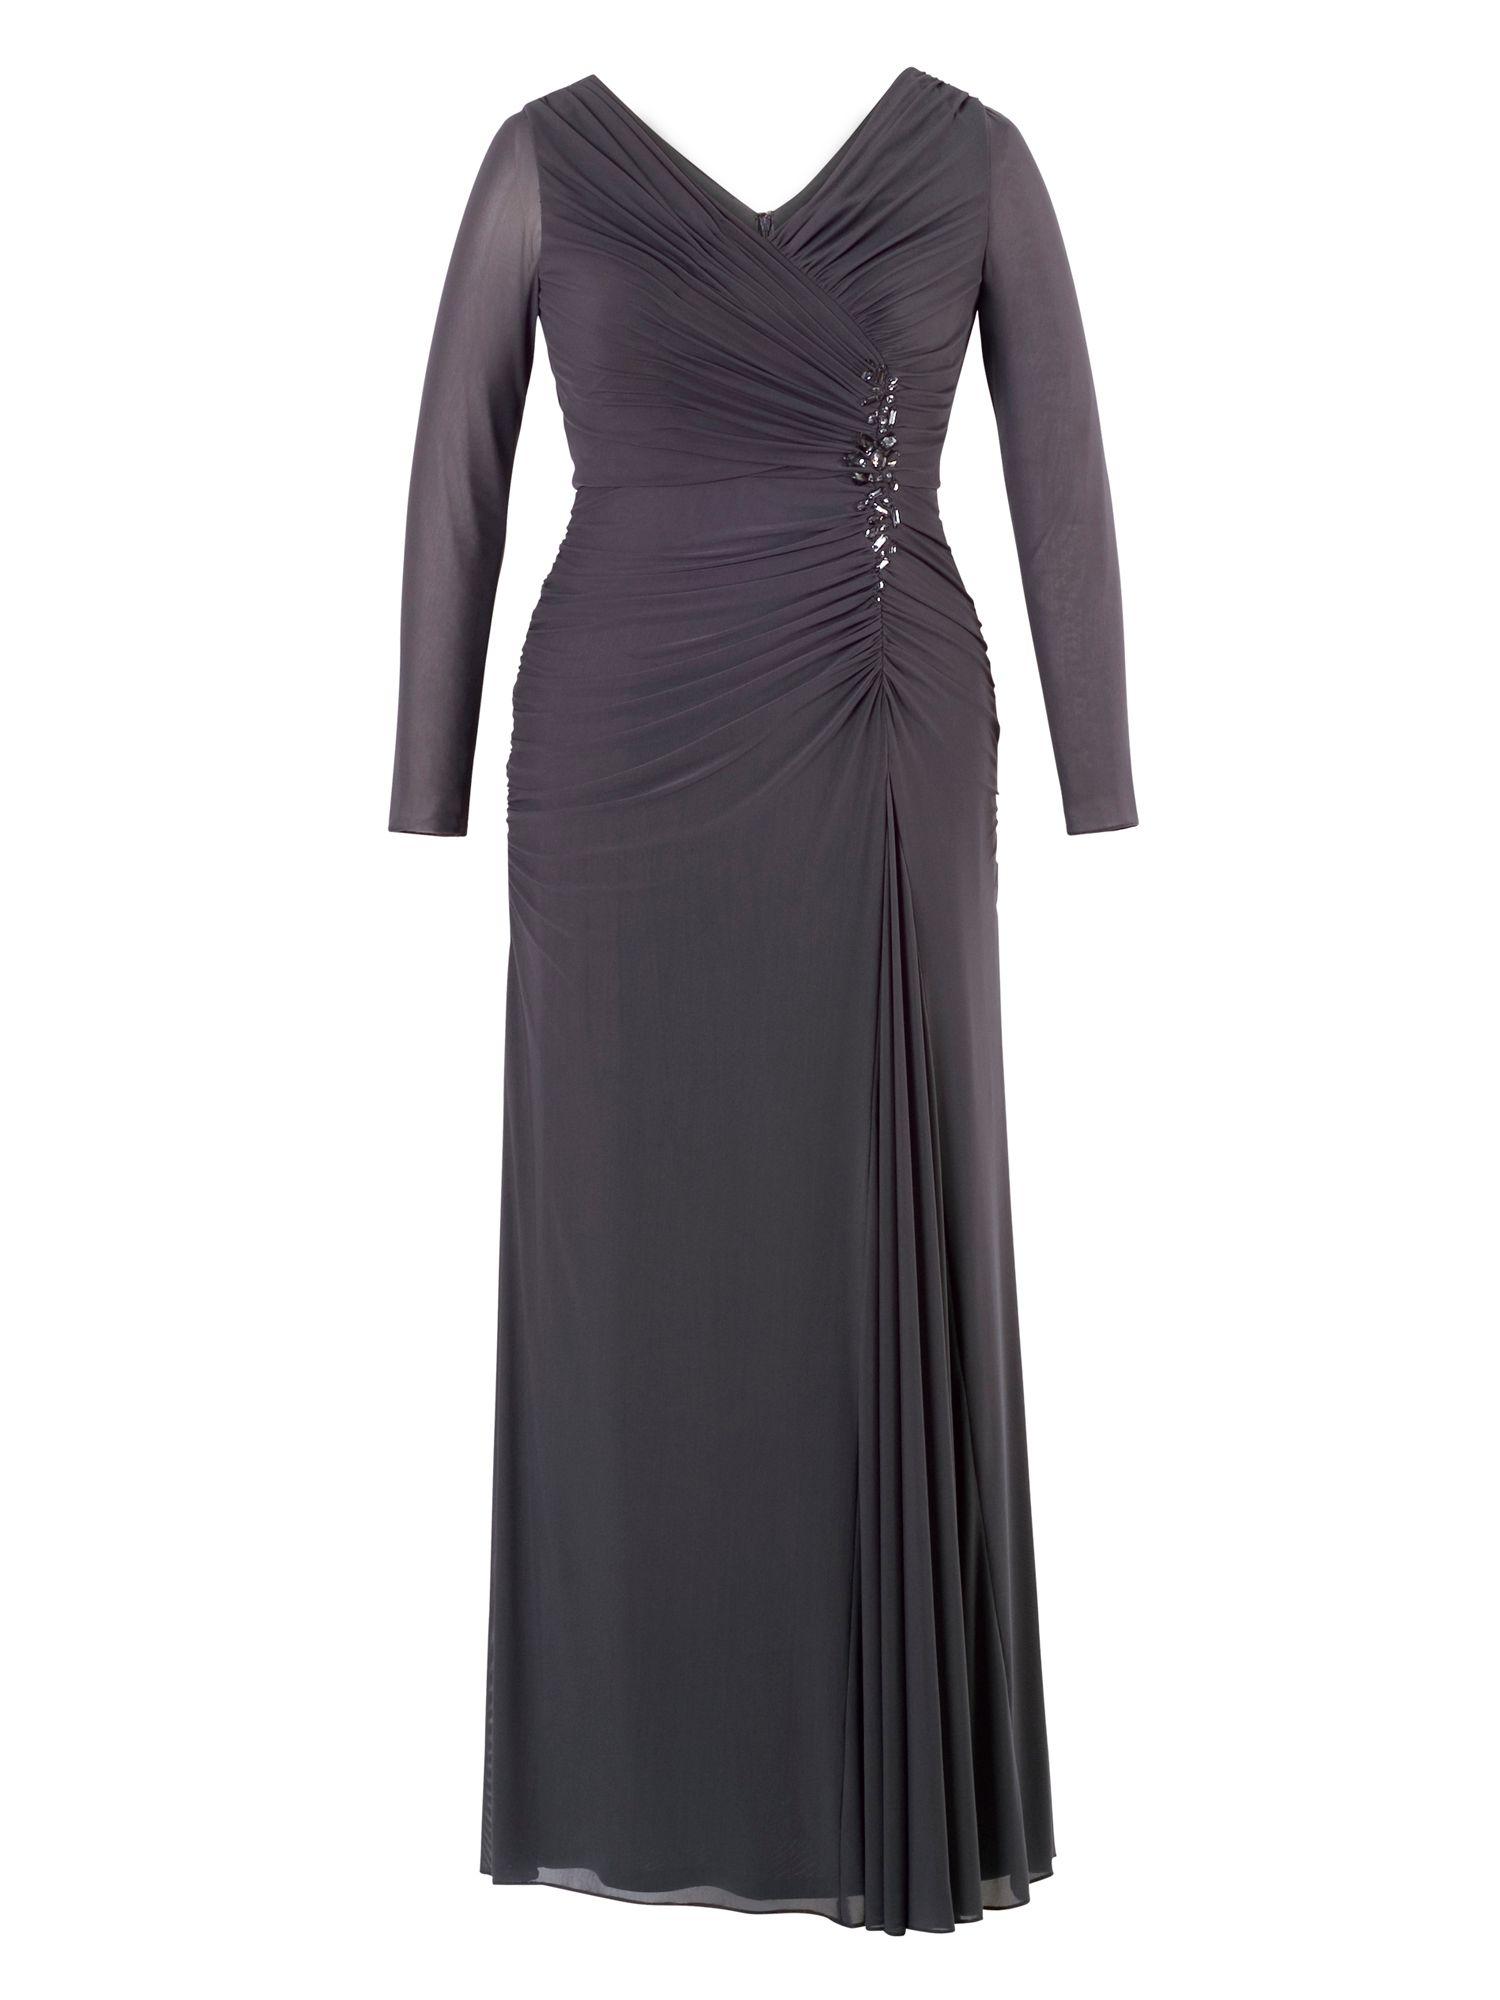 1940s Dresses and Clothing UK Chesca Beaded Mesh Maxi Dress £175.00 AT vintagedancer.com